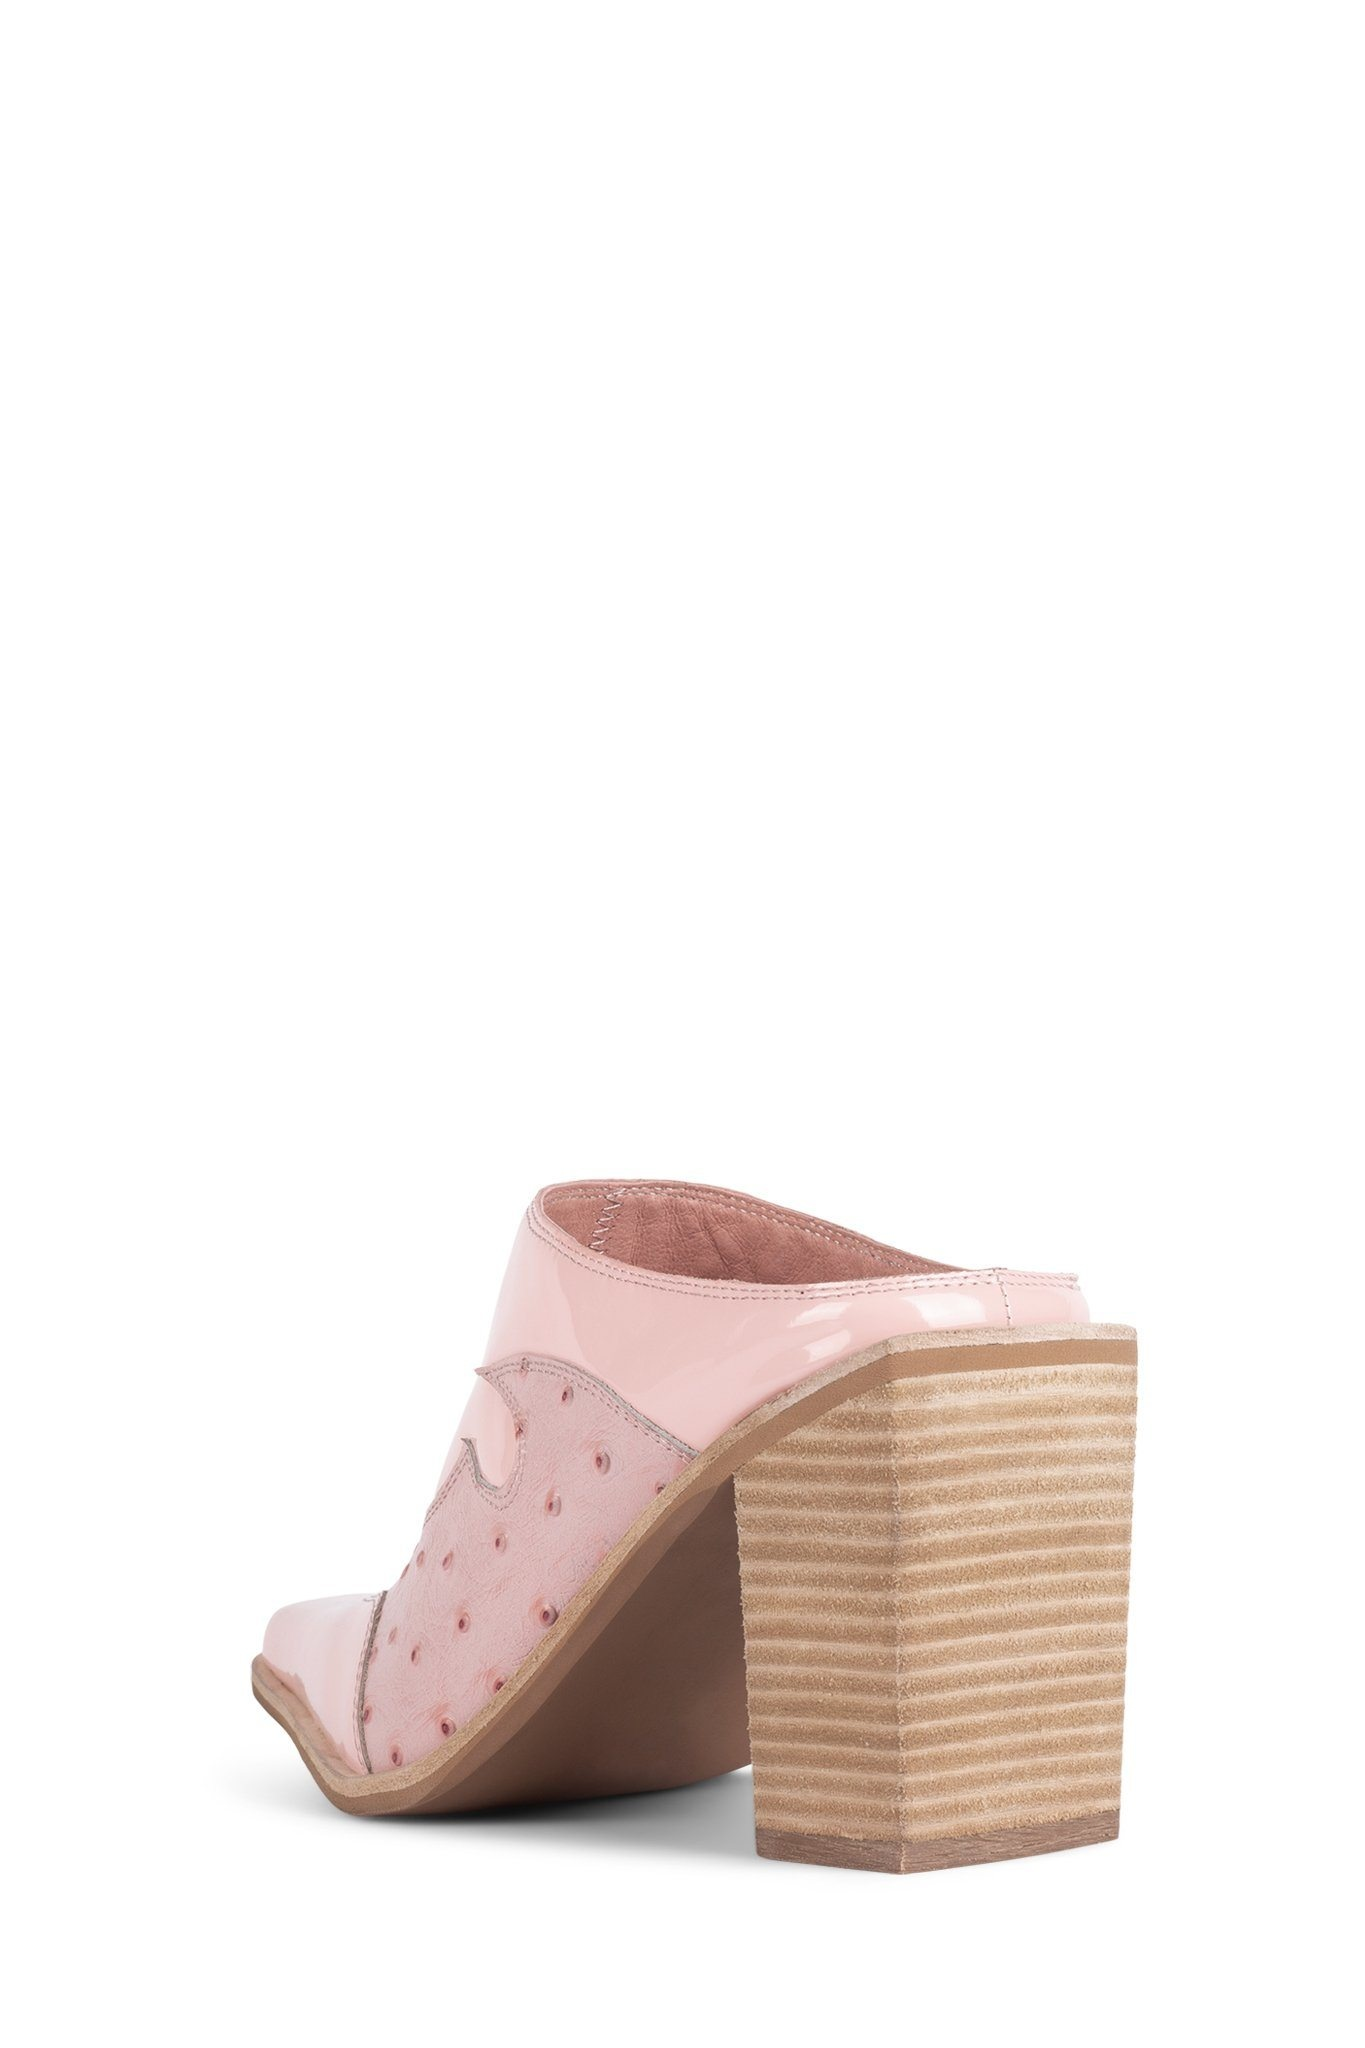 Jeffrey Campbell Cowgirl Pink Mule